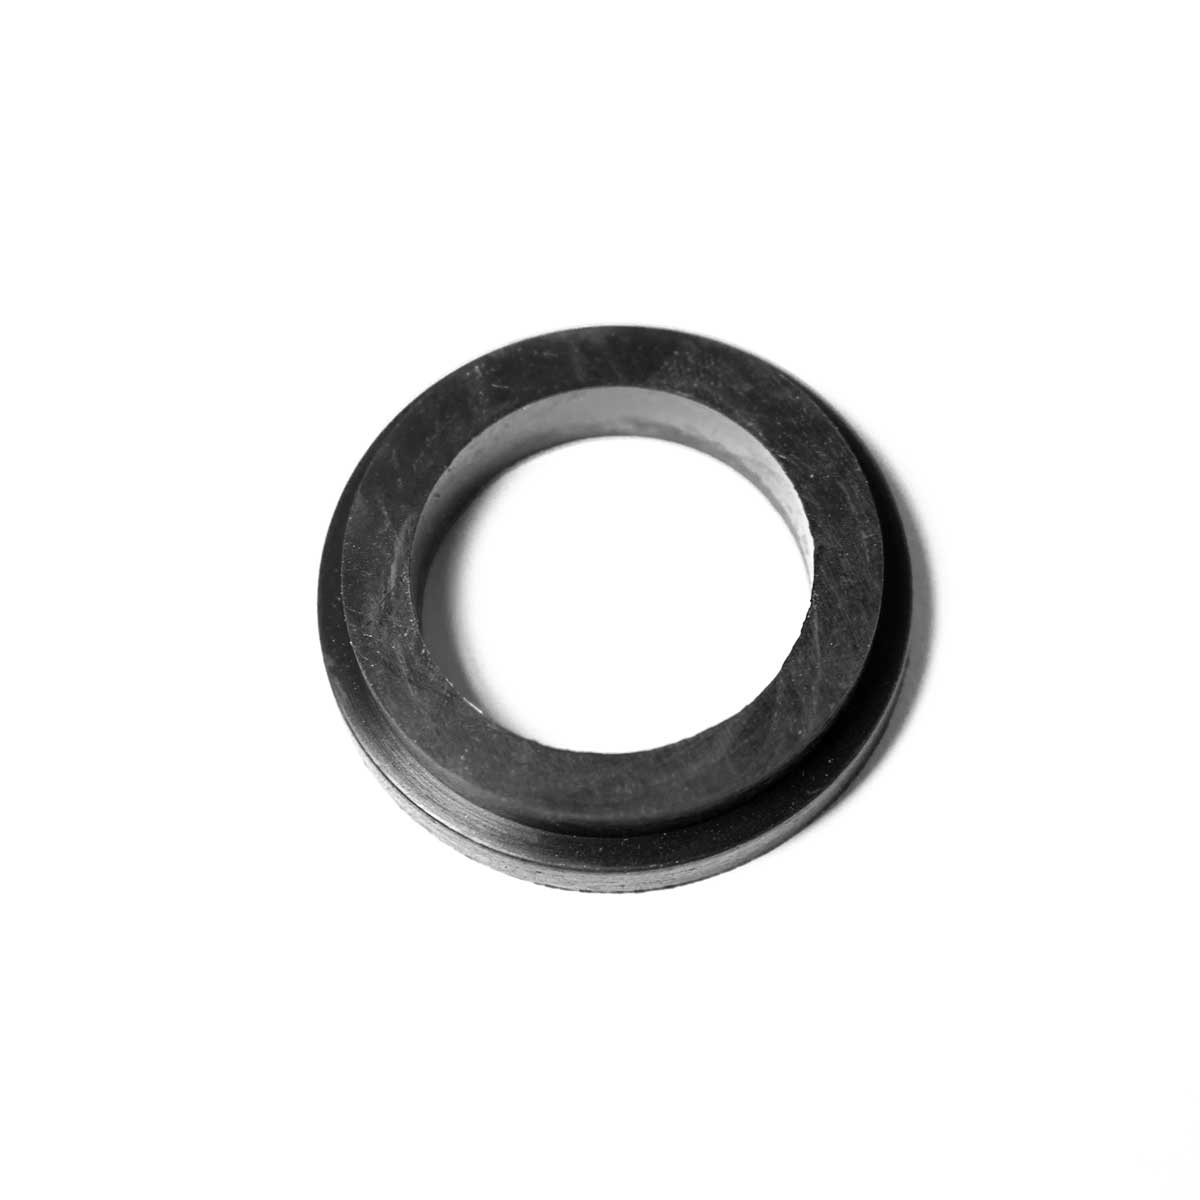 KFG Series Coupling Gasket - 131148/001